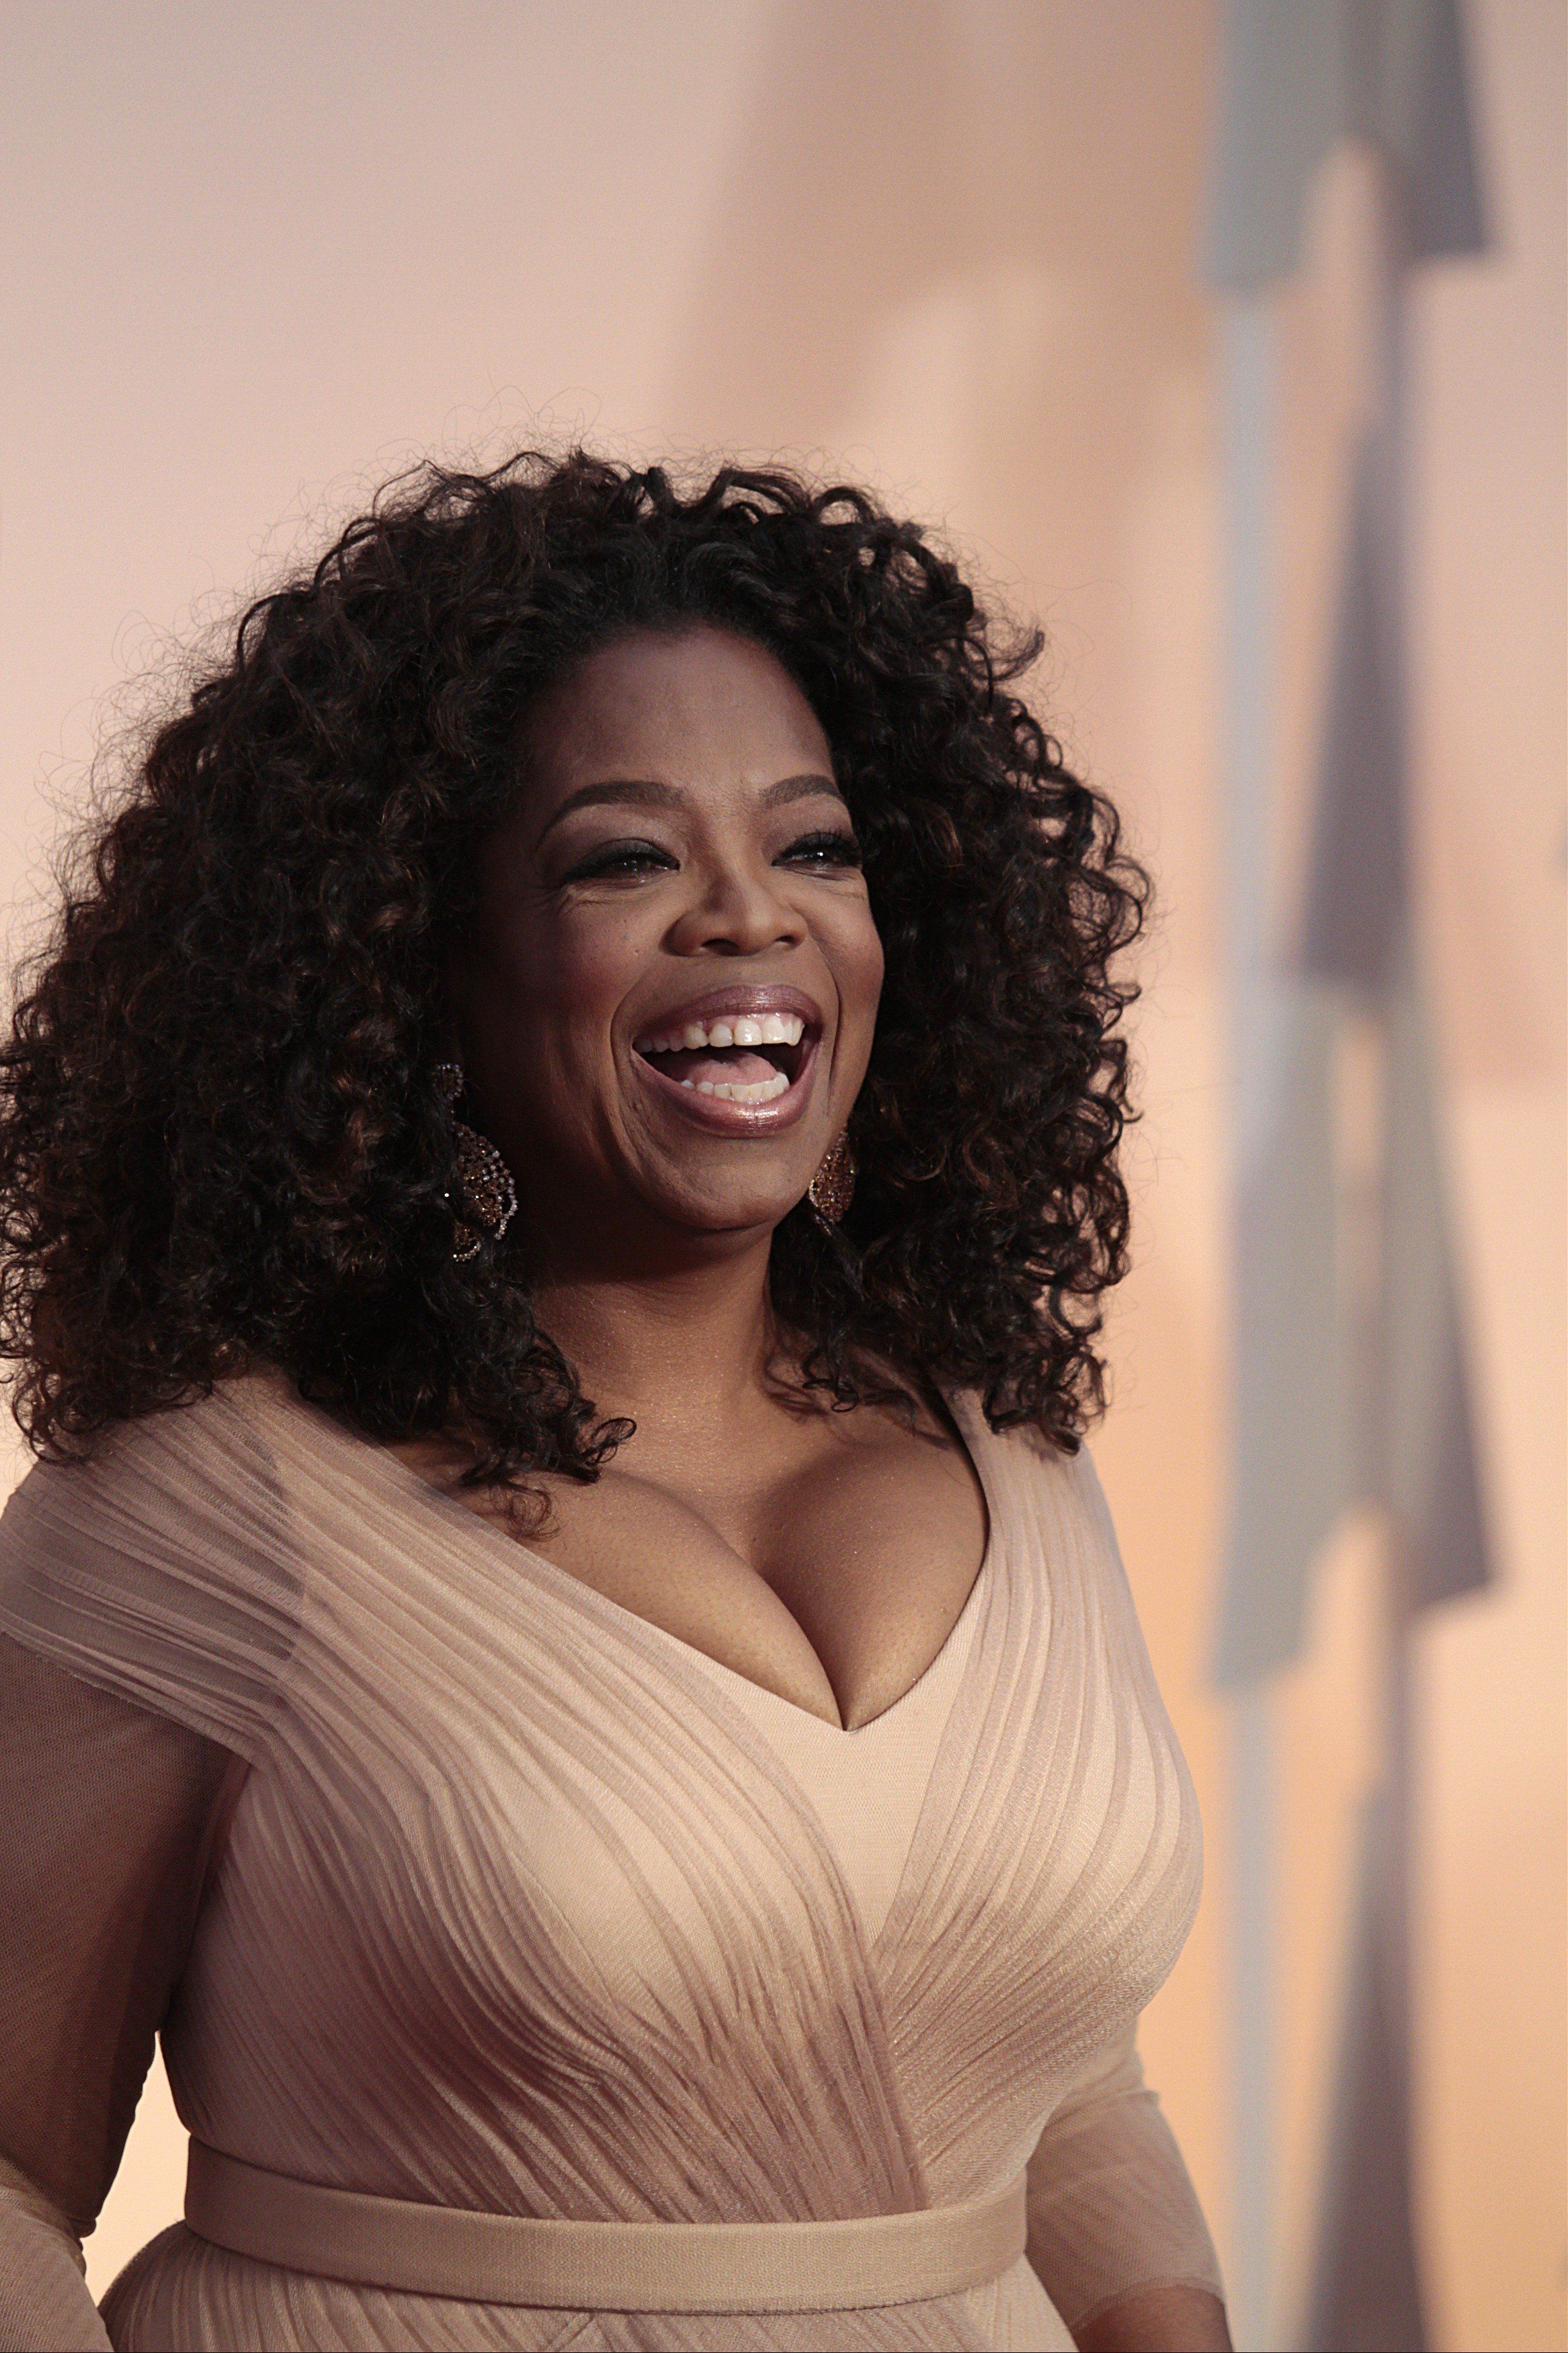 Oprah Winfrey arrives at the 87th Annual Academy Awards in Hollywood, California on February 22, 2015. Francis Specker /Landov